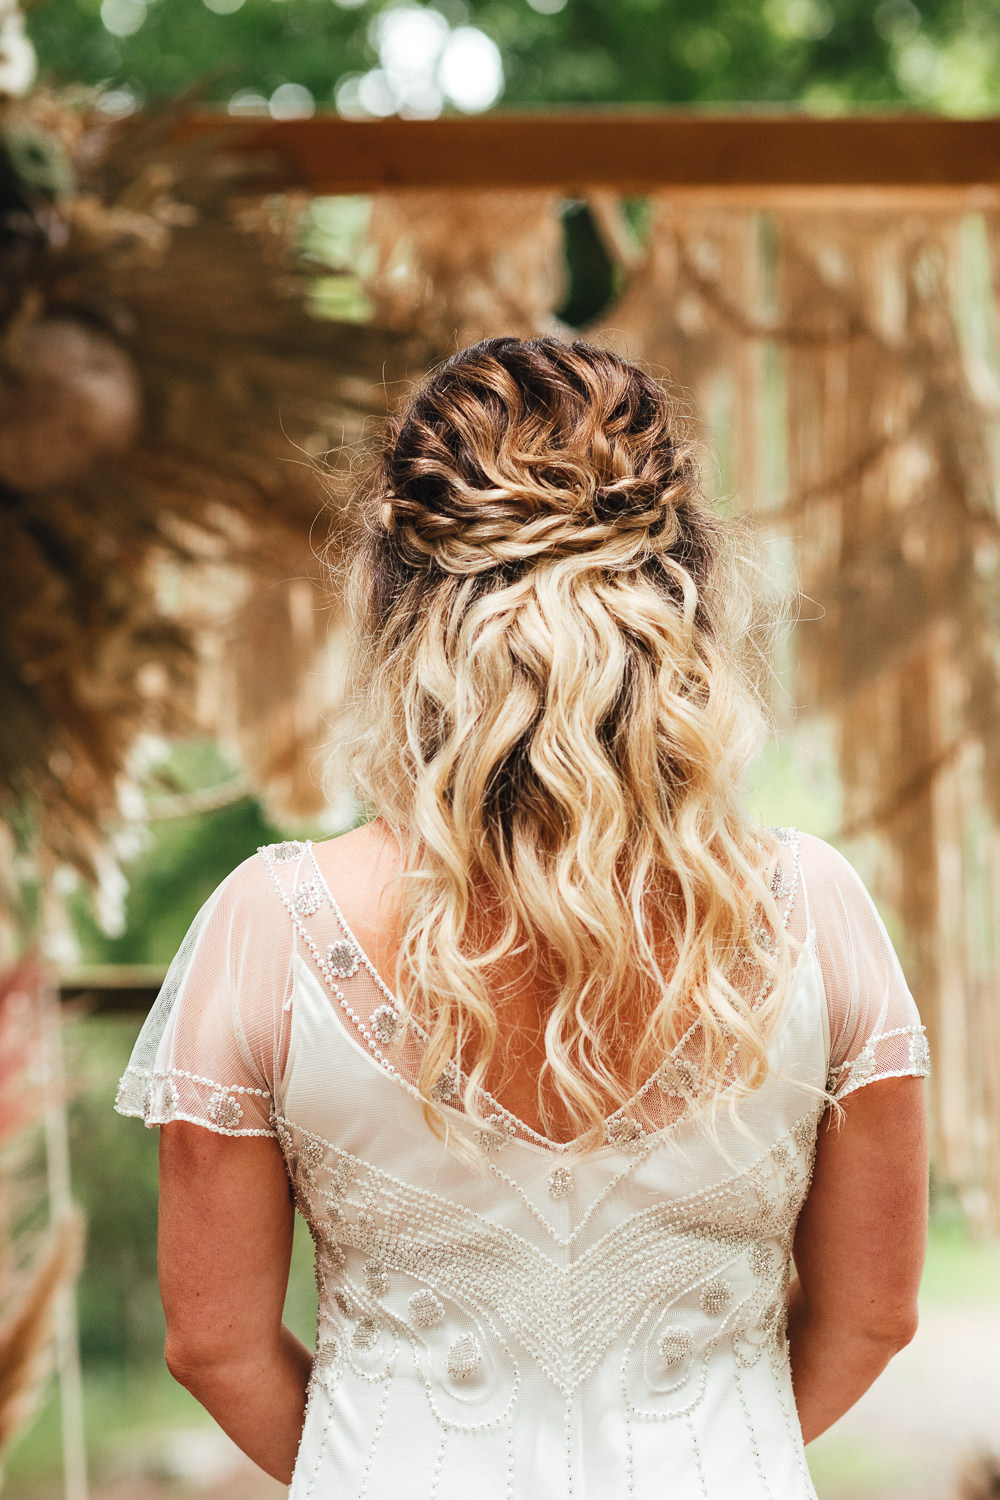 Bride Bridal Hair Style Up Do Plait Braid Bohemian Elopement Kirsty Mackenzie Photography